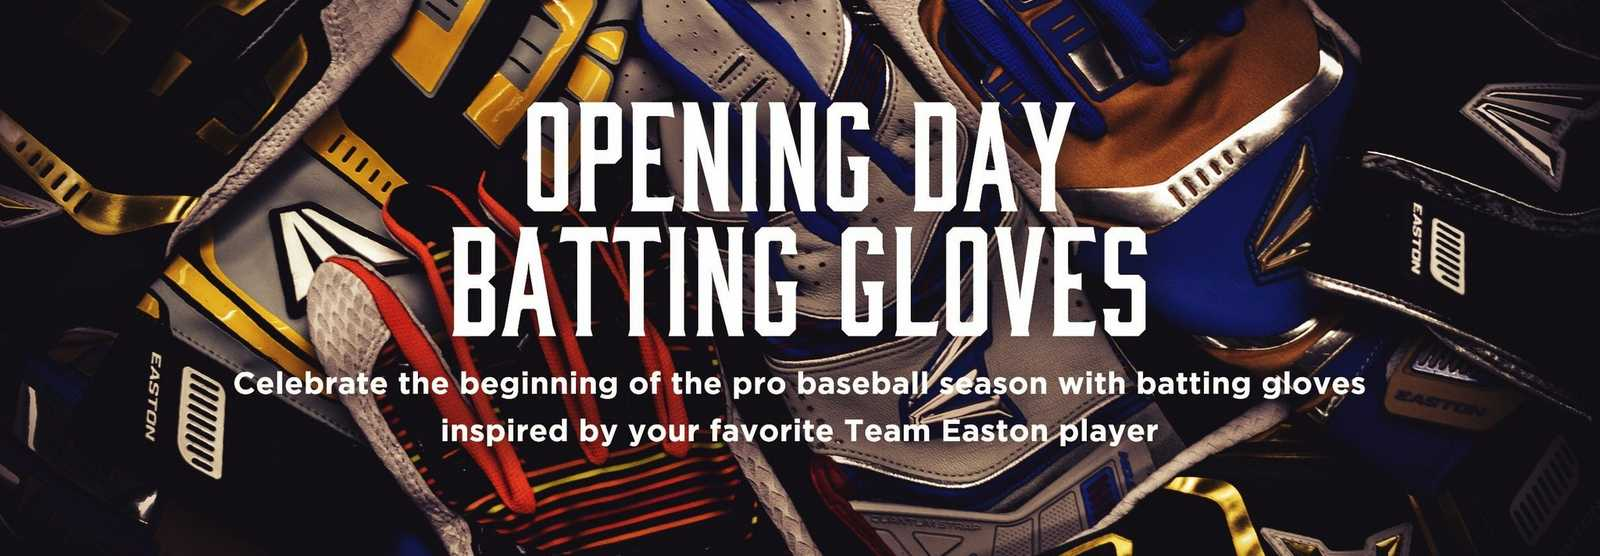 limited-edition-opening-day-batting-gloves